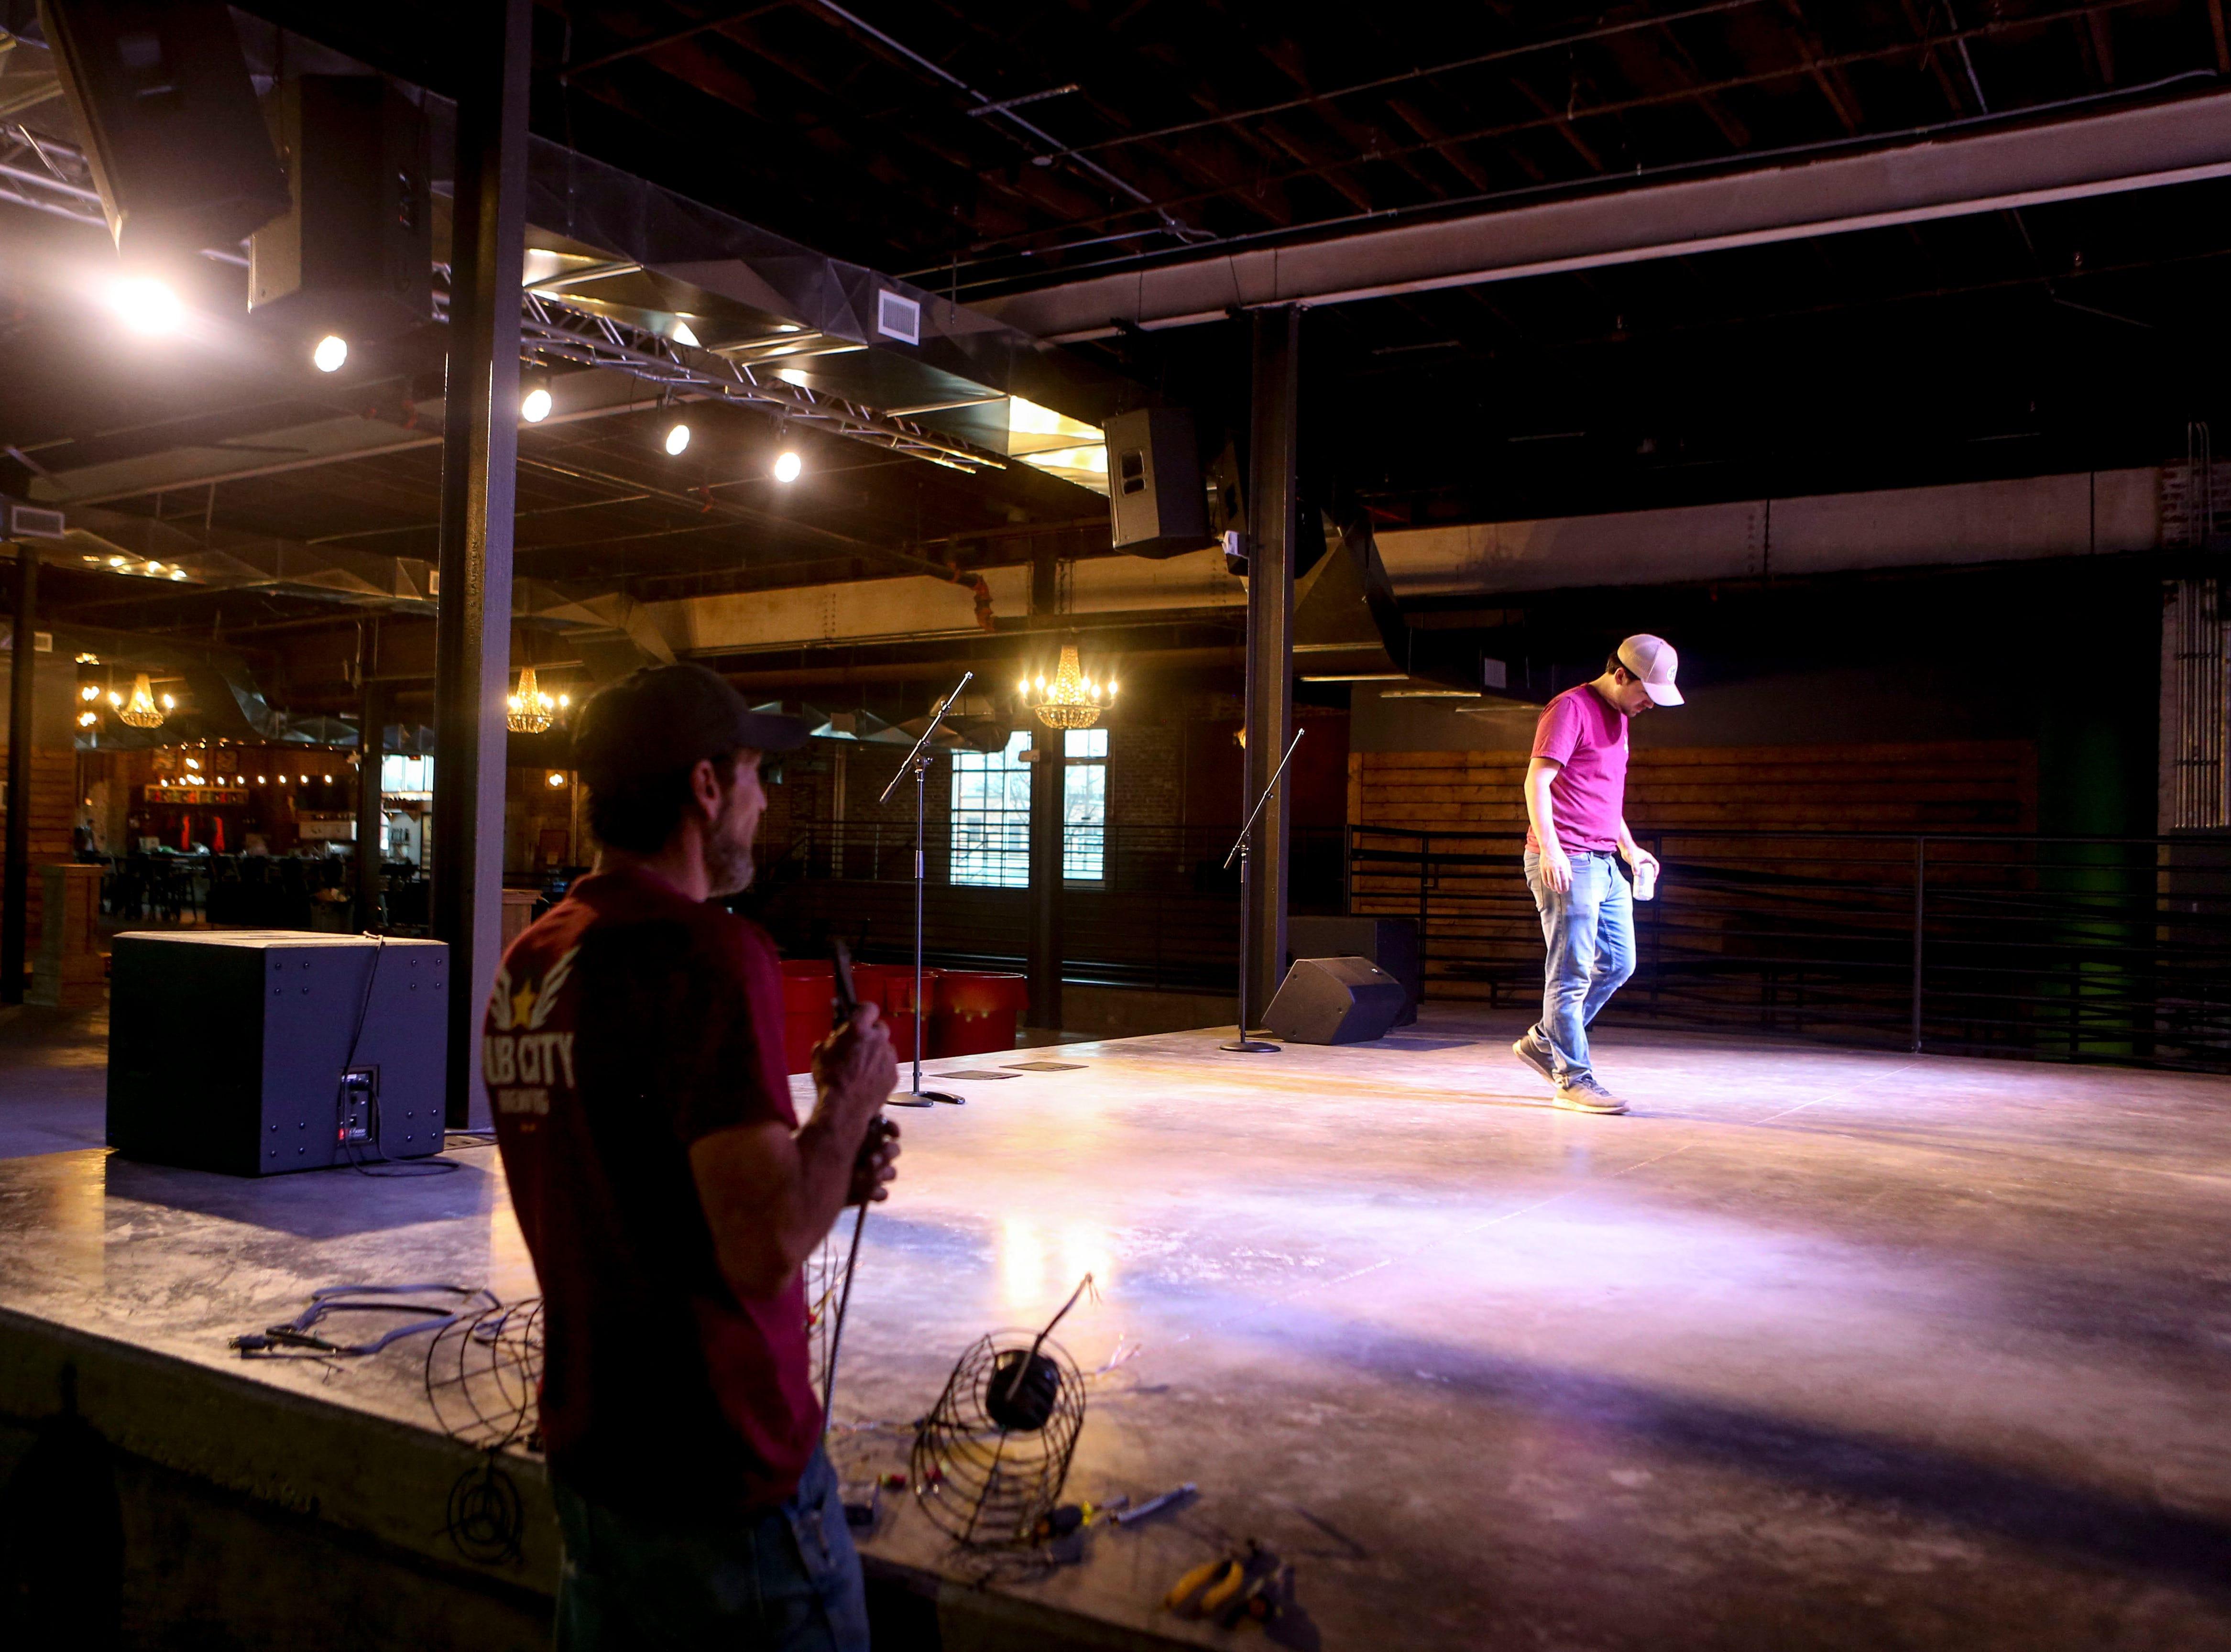 Lewis Silvers walks on the stage and examines the spread of spotlights at Hub City Brewing in Jackson, Tenn., on Wednesday, Feb. 6, 2019.